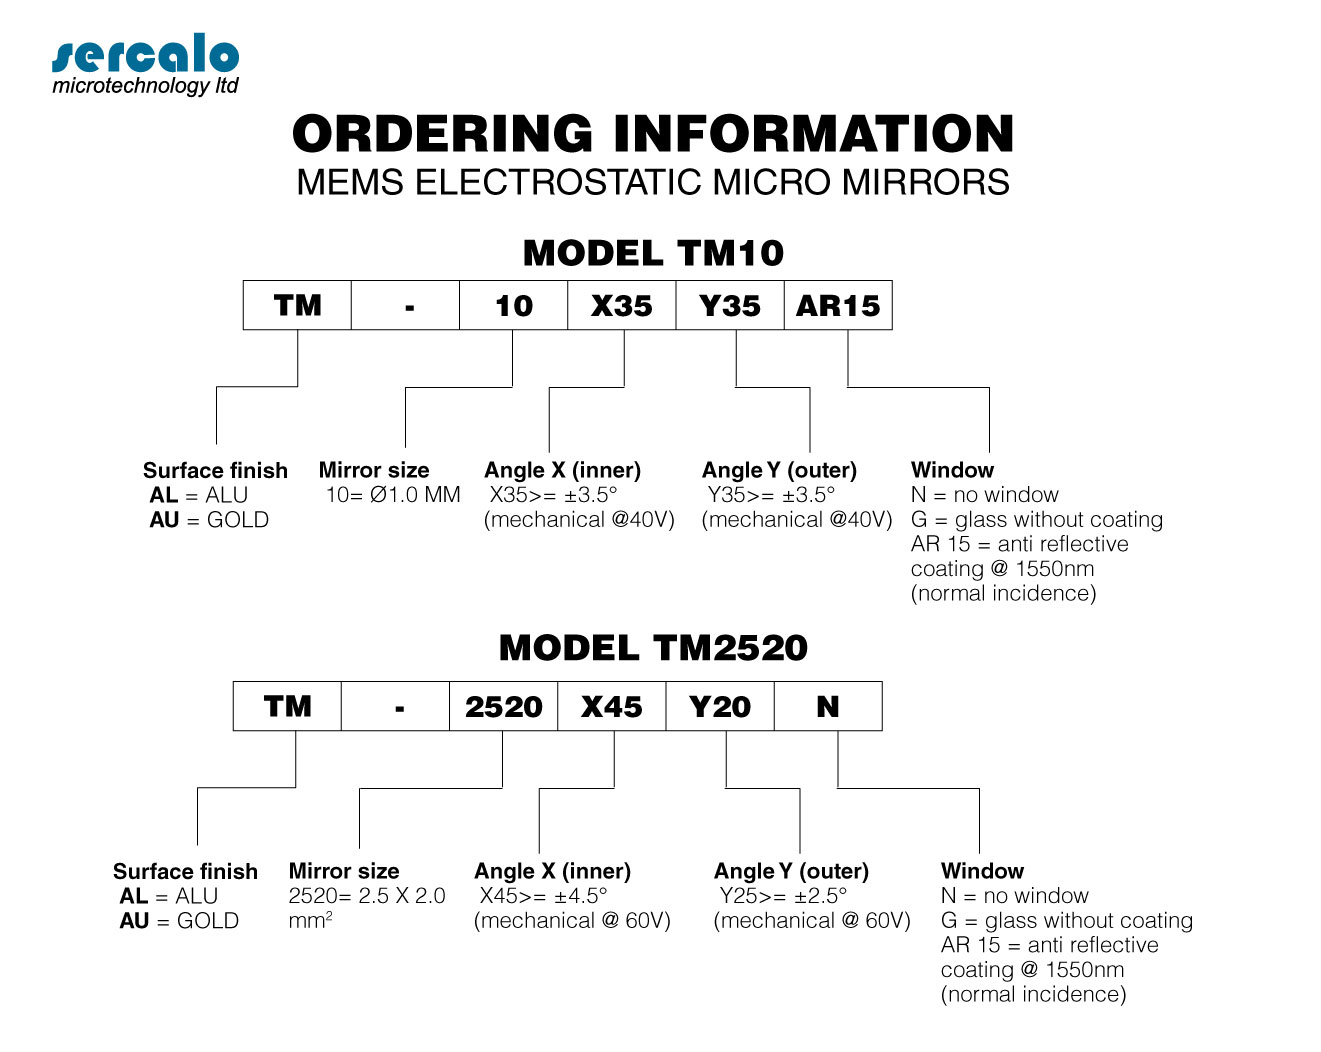 MEMS ELECTROSTATIC MICRO MIRRORS TM10 AND TM2520